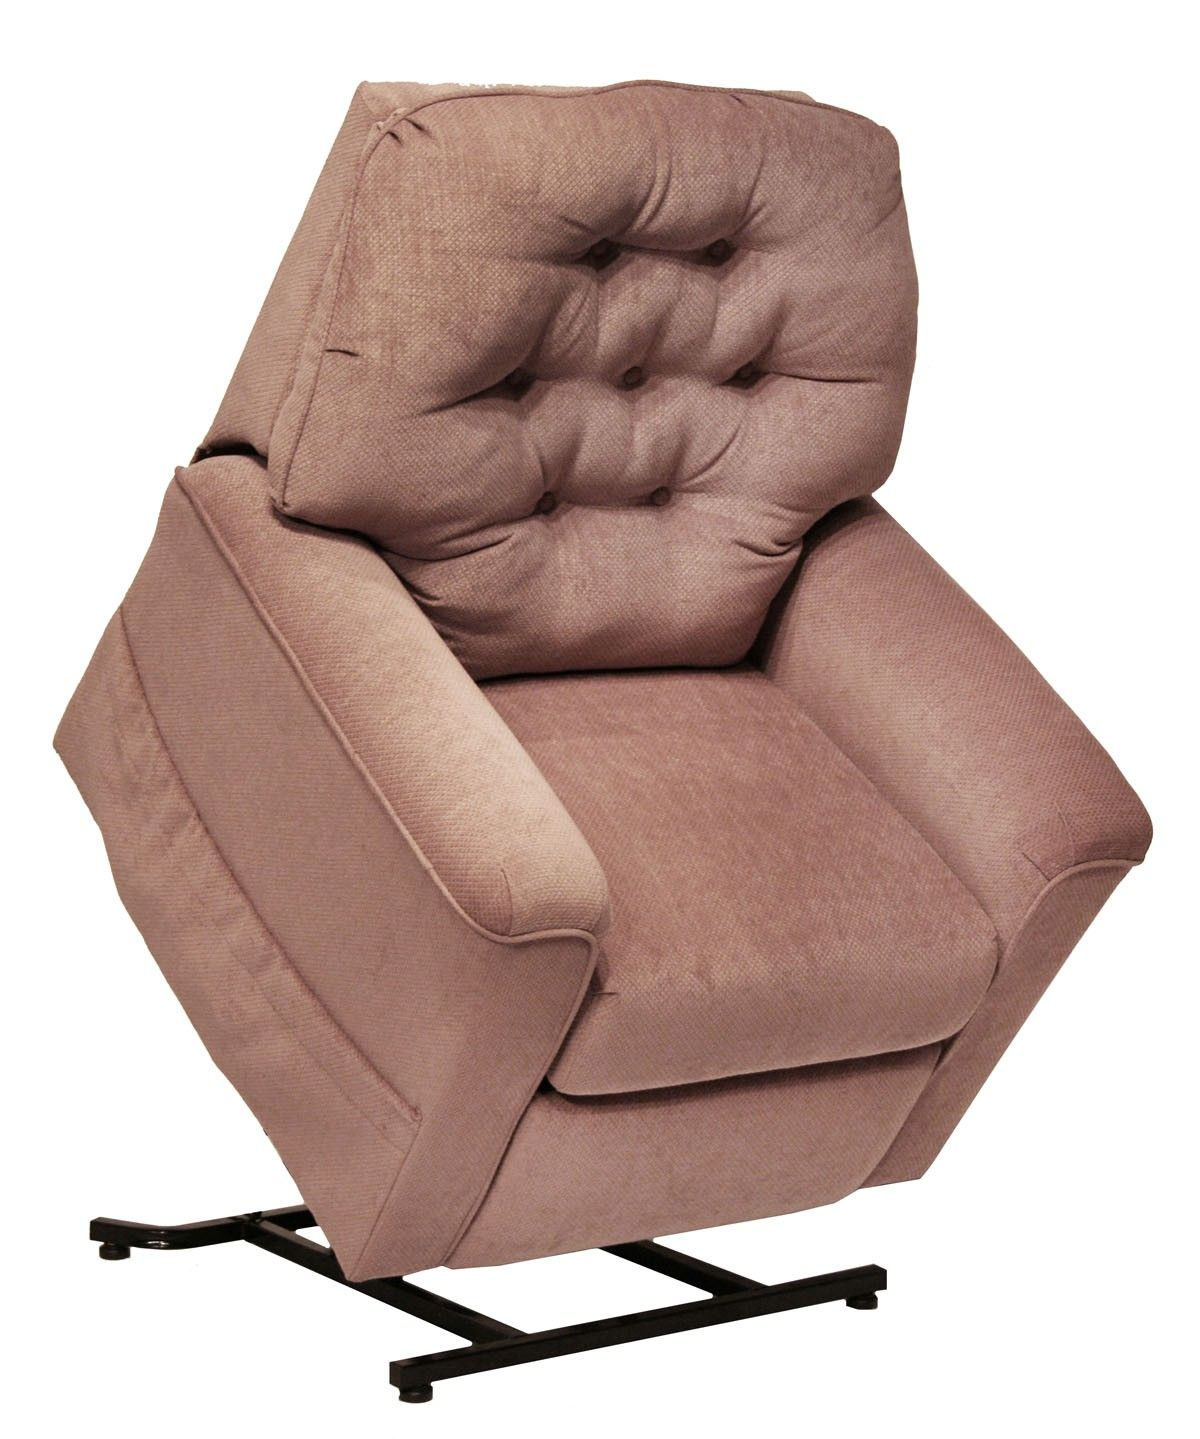 Catnapper Embrace Power Lift Chair Full Lay Out Recliner With Heat Massage 4846 Power Lift Chairs Recliners Recliner Chair Wooden Patio Chairs